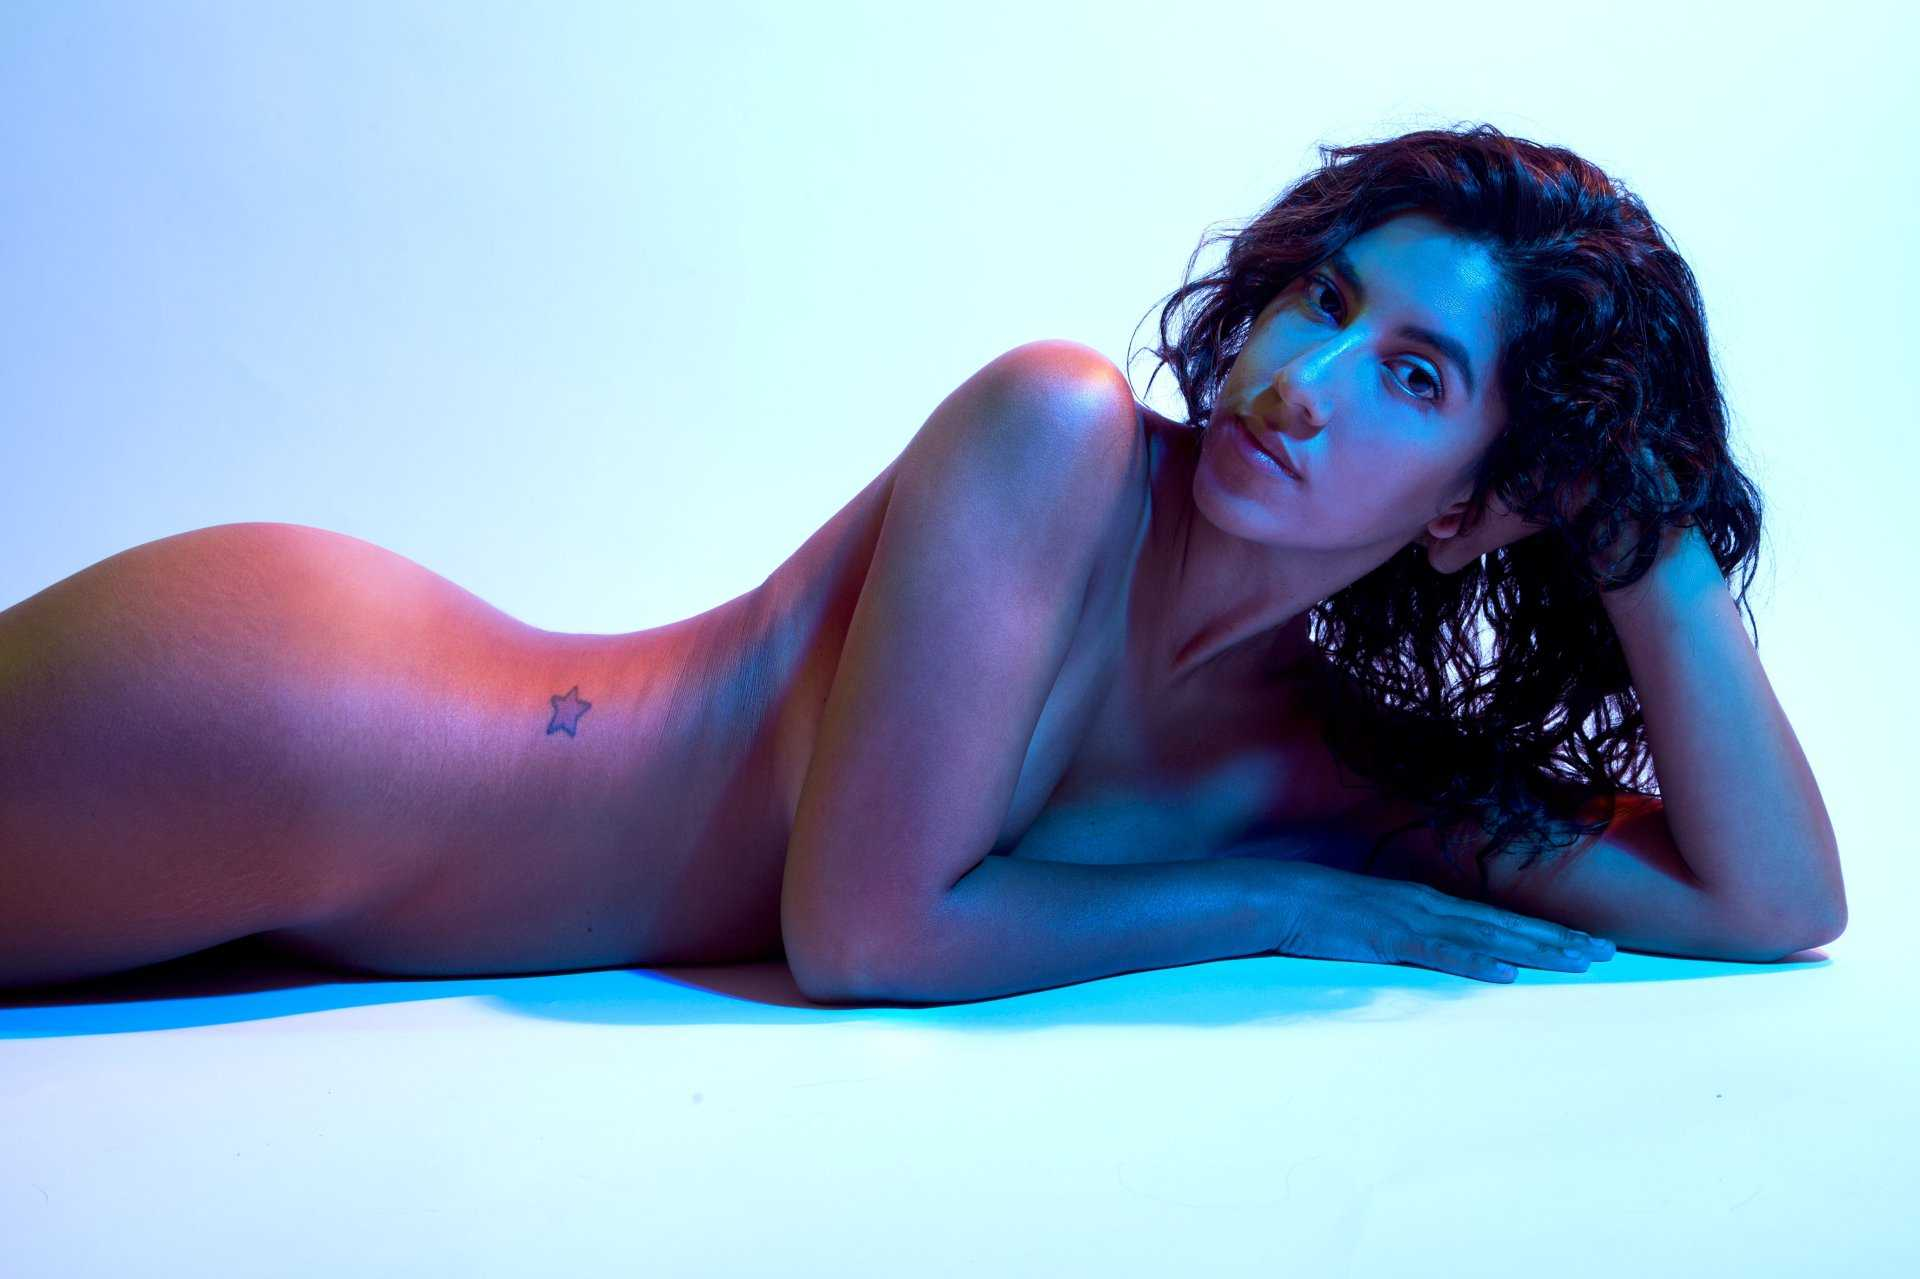 """Stephanie Beatriz for """"98 Project"""" Photoshoot by Maggie West 2018"""